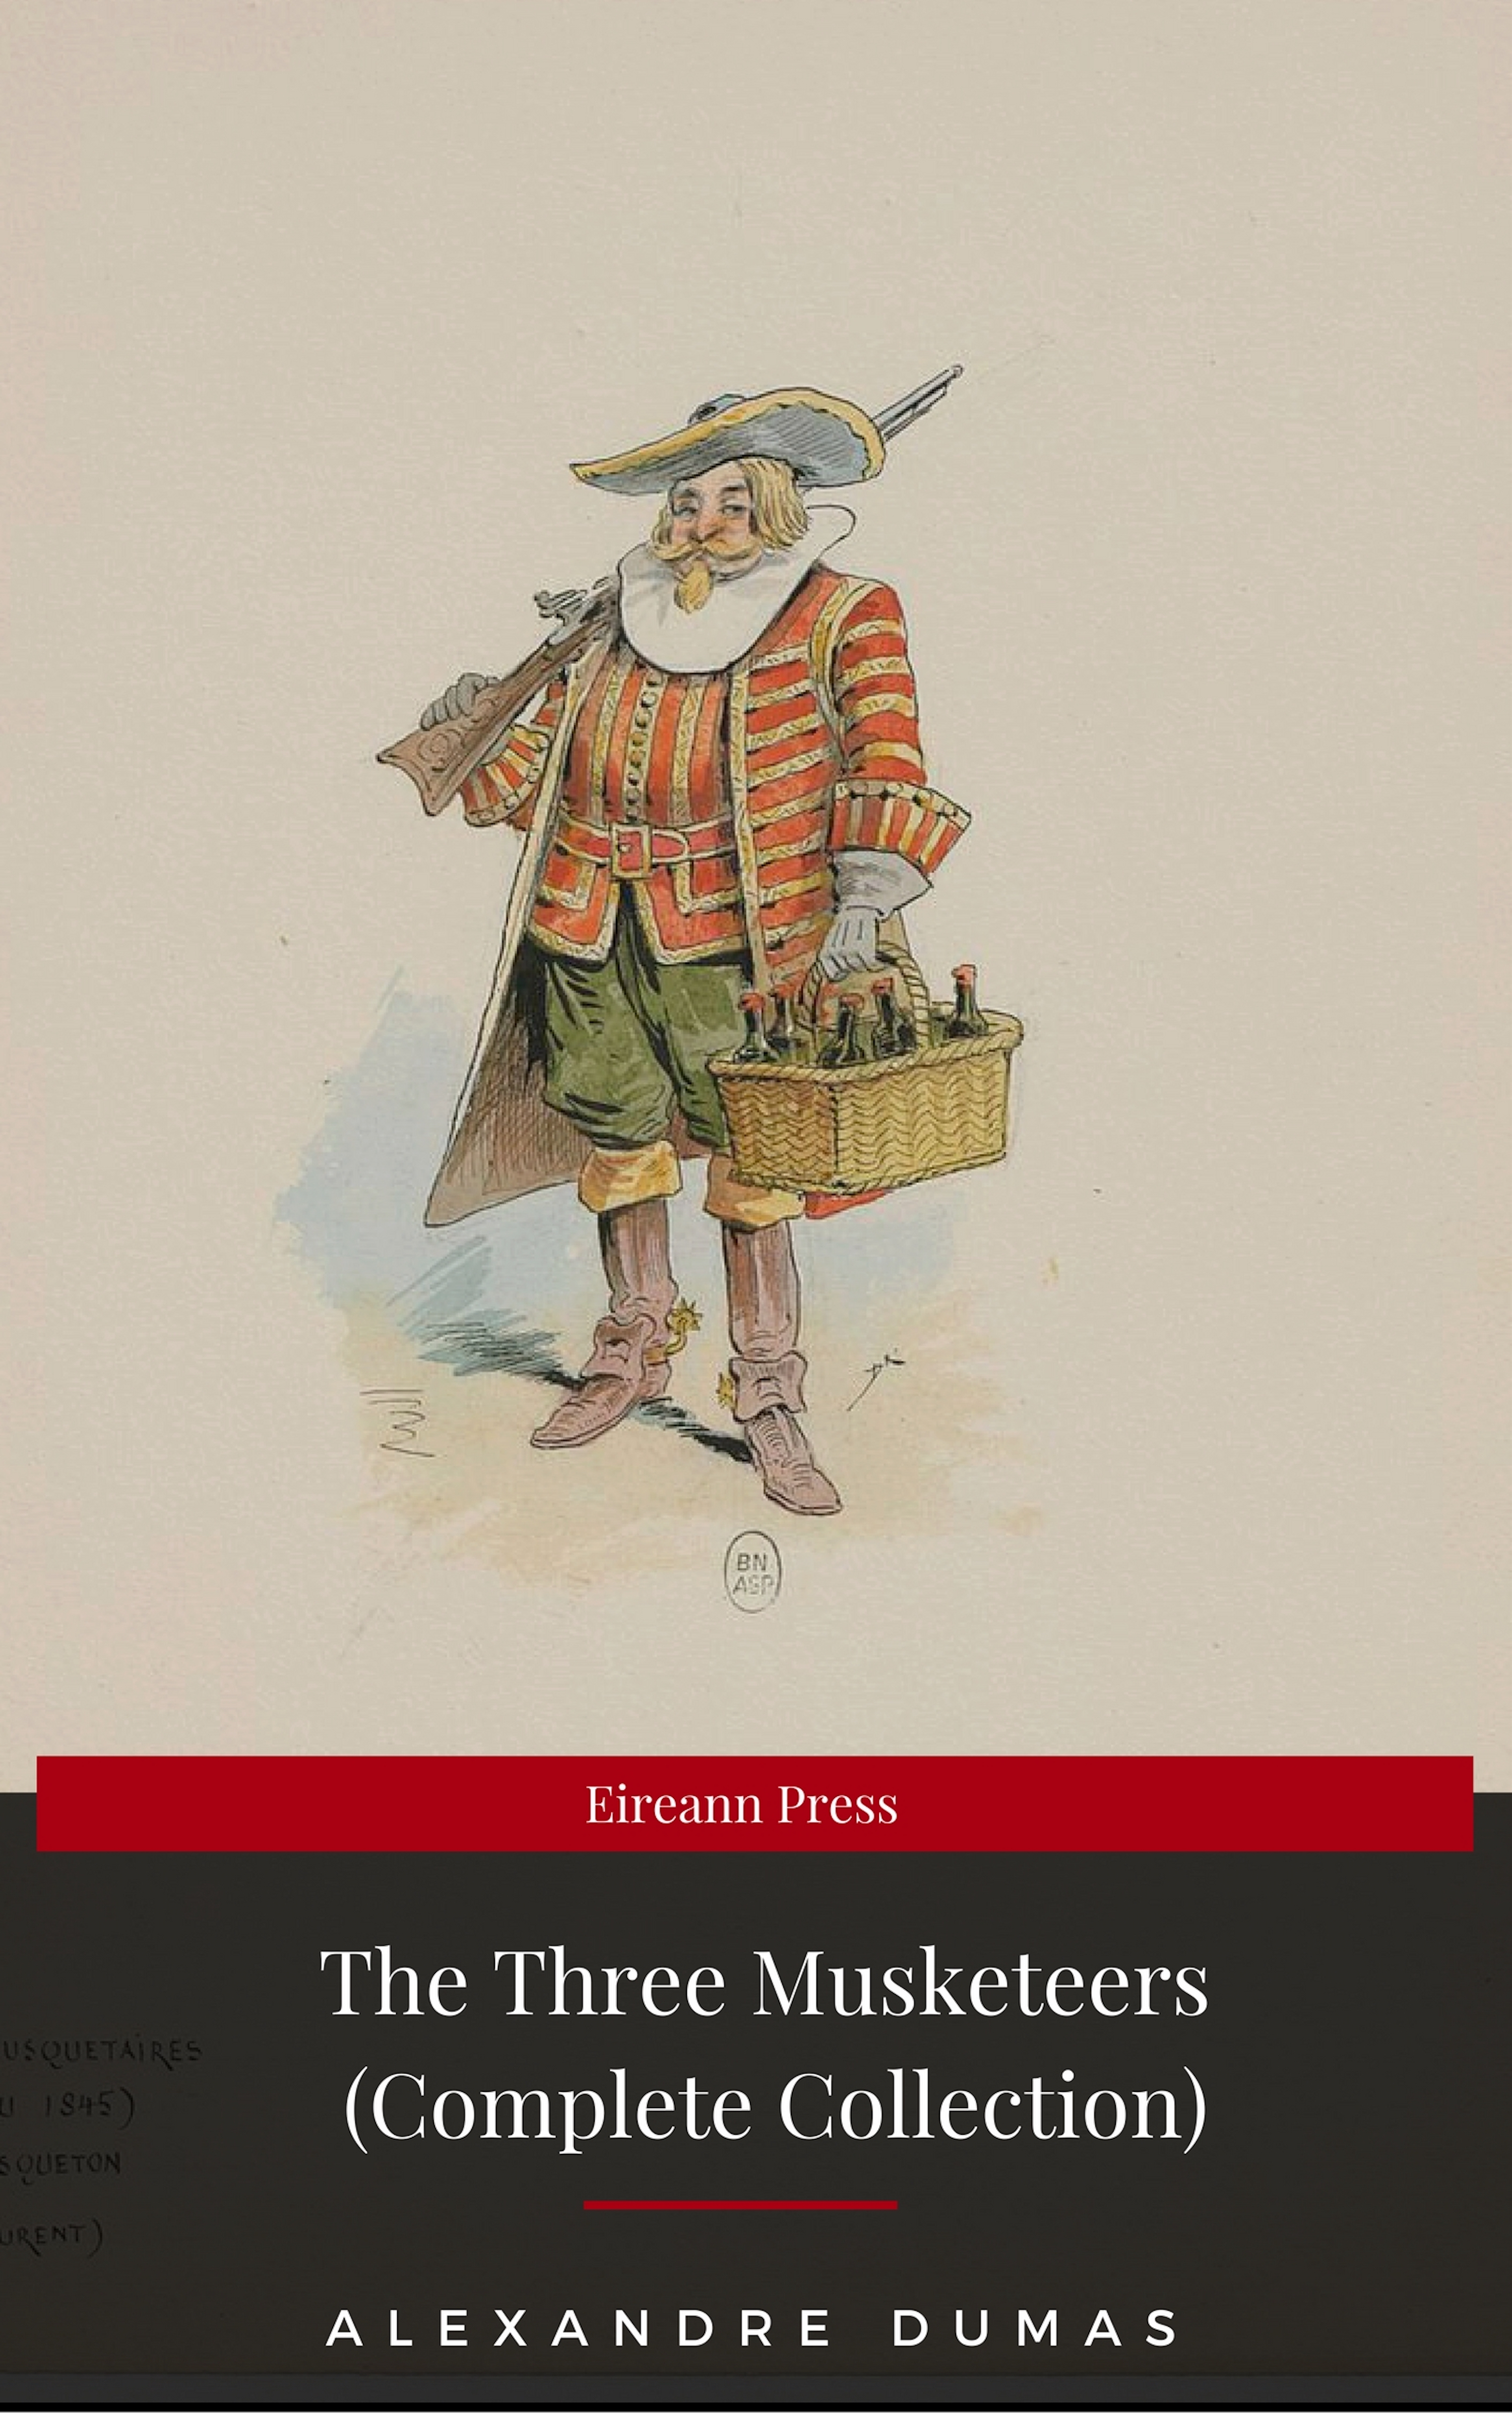 Alexandre Dumas THE THREE MUSKETEERS - Complete Collection: The Three Musketeers, Twenty Years After, The Vicomte of Bragelonne, Ten Years Later, Louise da la Valliere & The Man in the Iron Mask: Adventure Classics lionel decle three years in savage africa